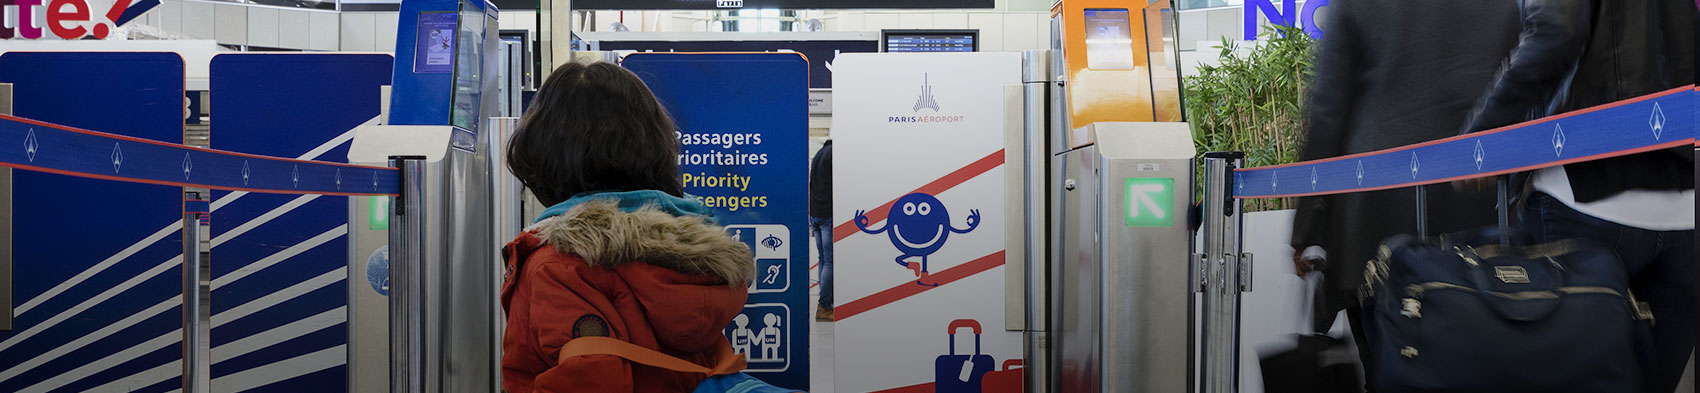 Travel With A Child At Paris Cdg And Paris Orly Paris